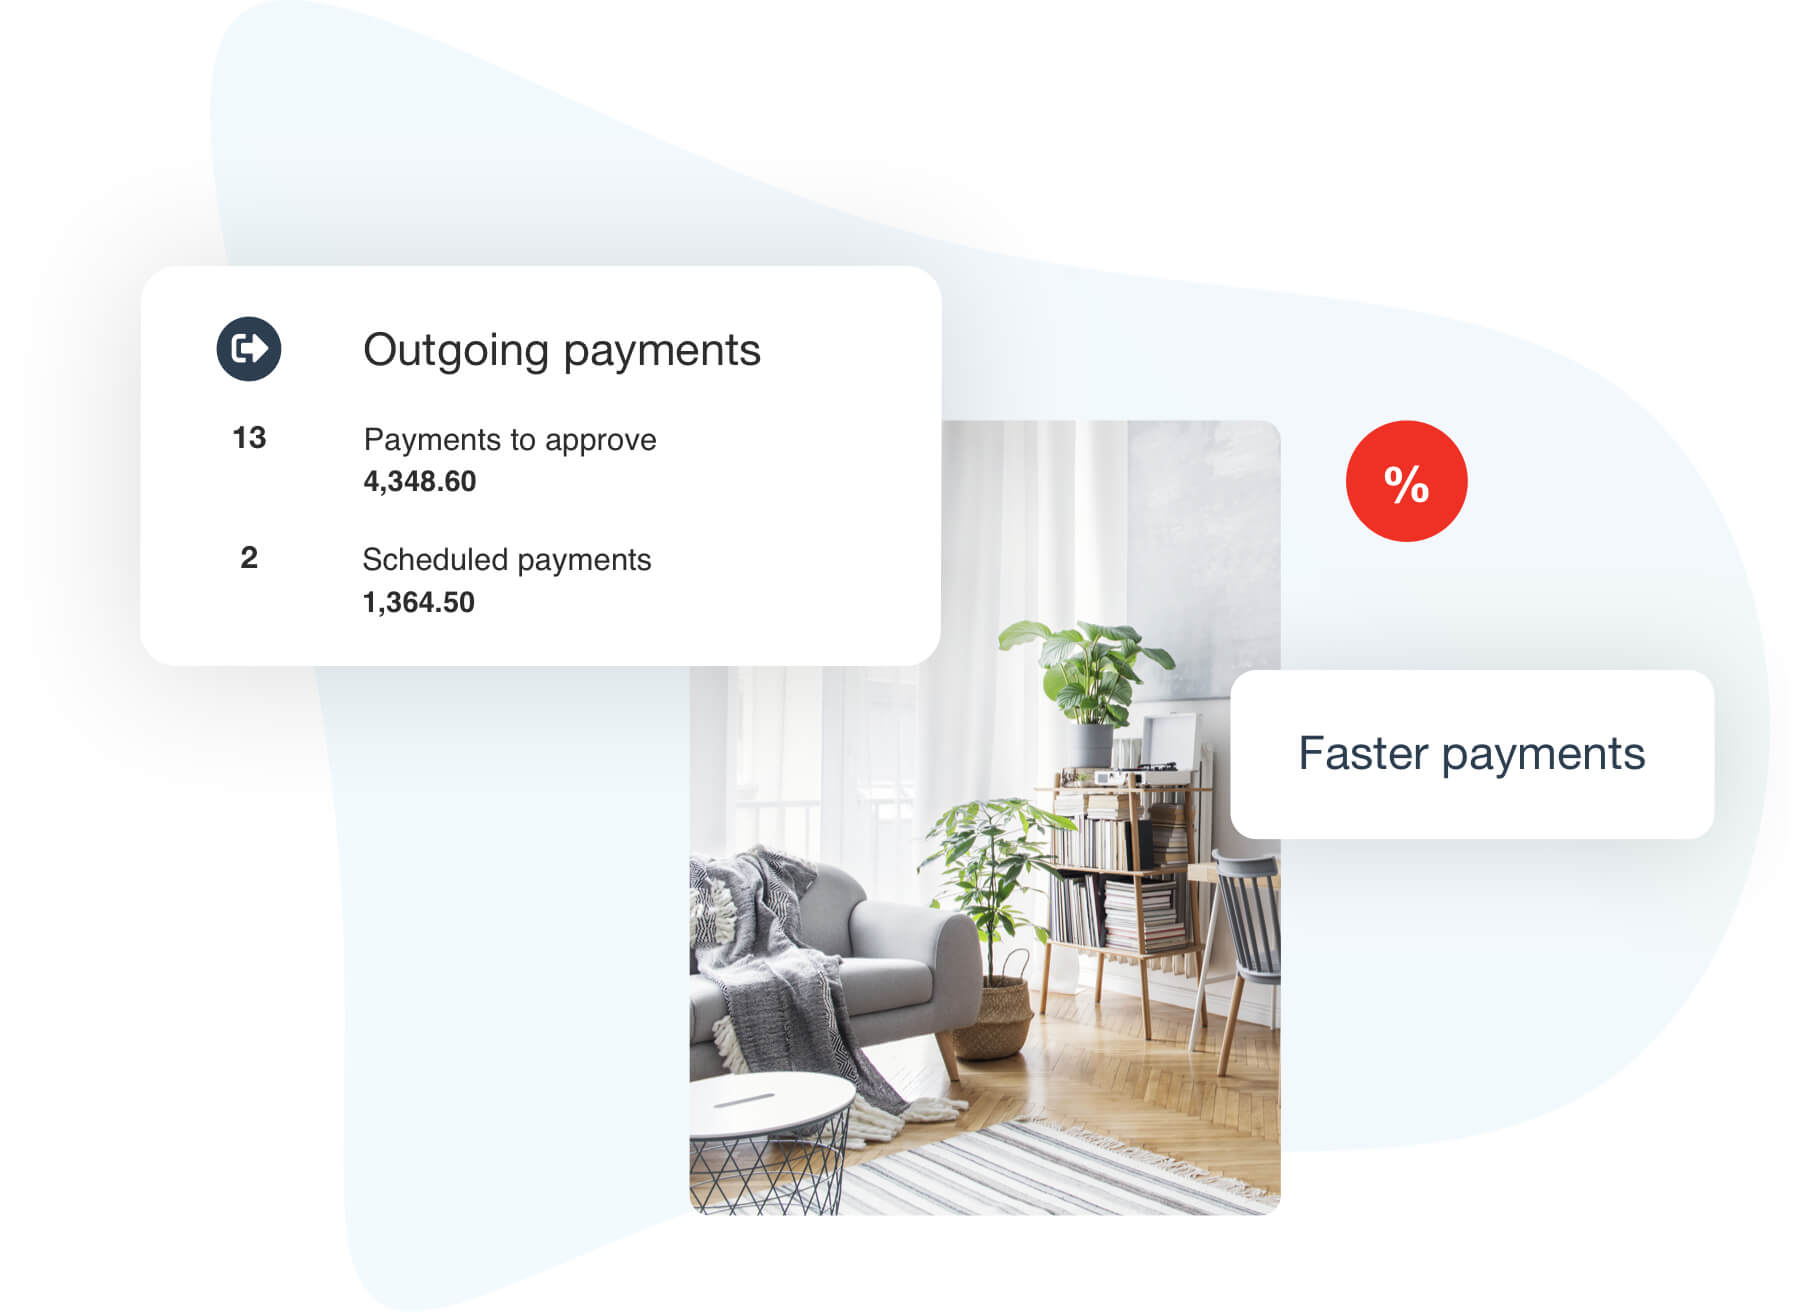 Automated outgoing payments feature